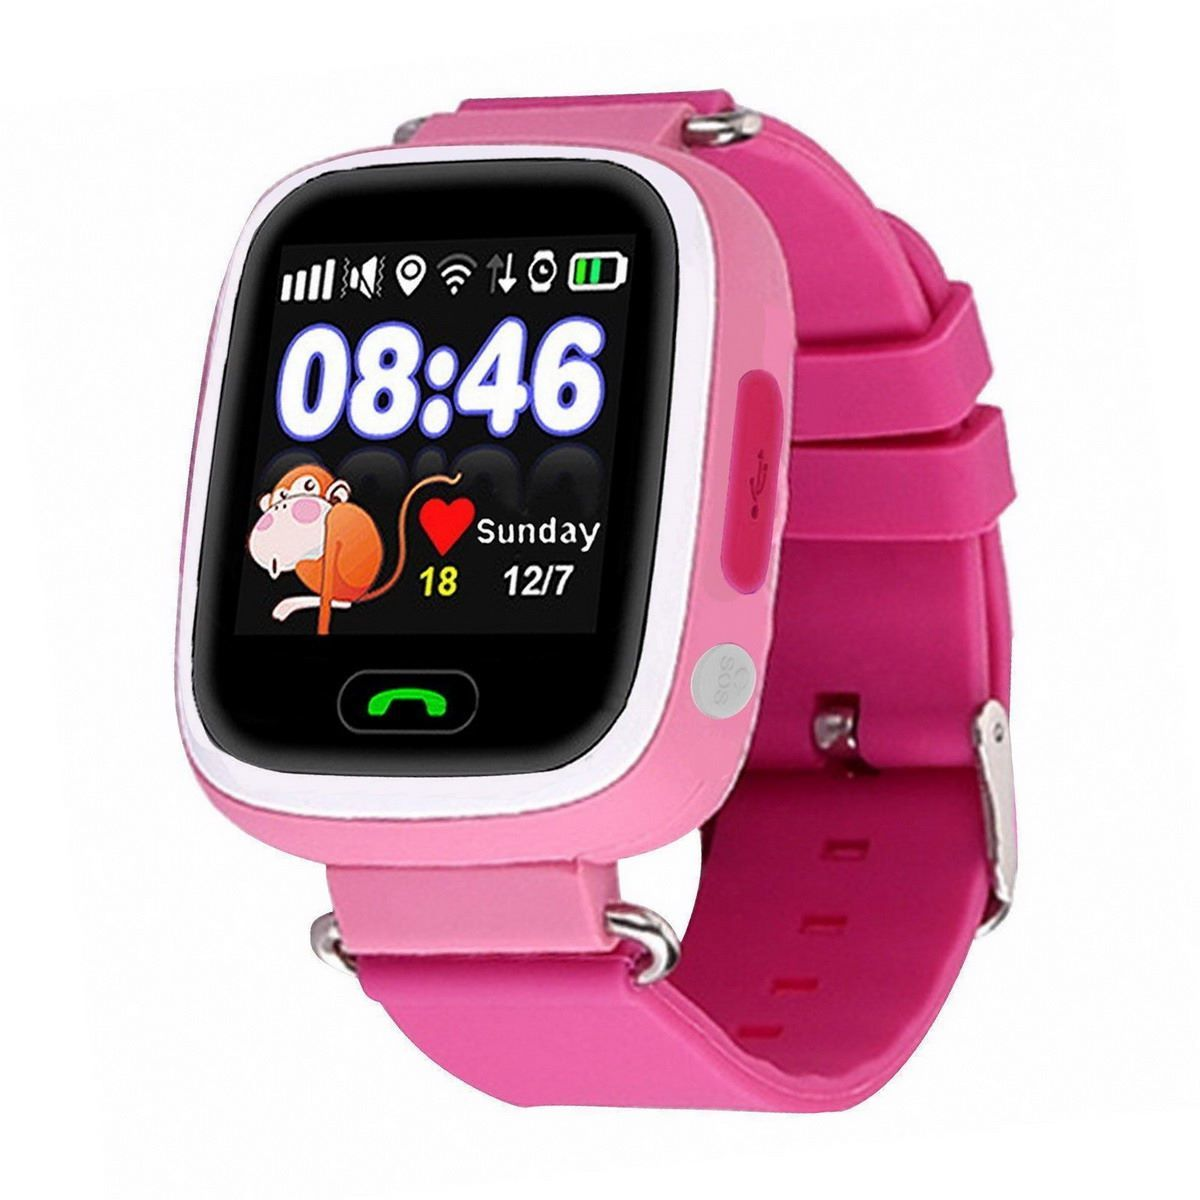 Каталог Детские часы Smart Baby Watch Q80 - Q90 / GW100 smart_baby_watch_q80_01.jpg